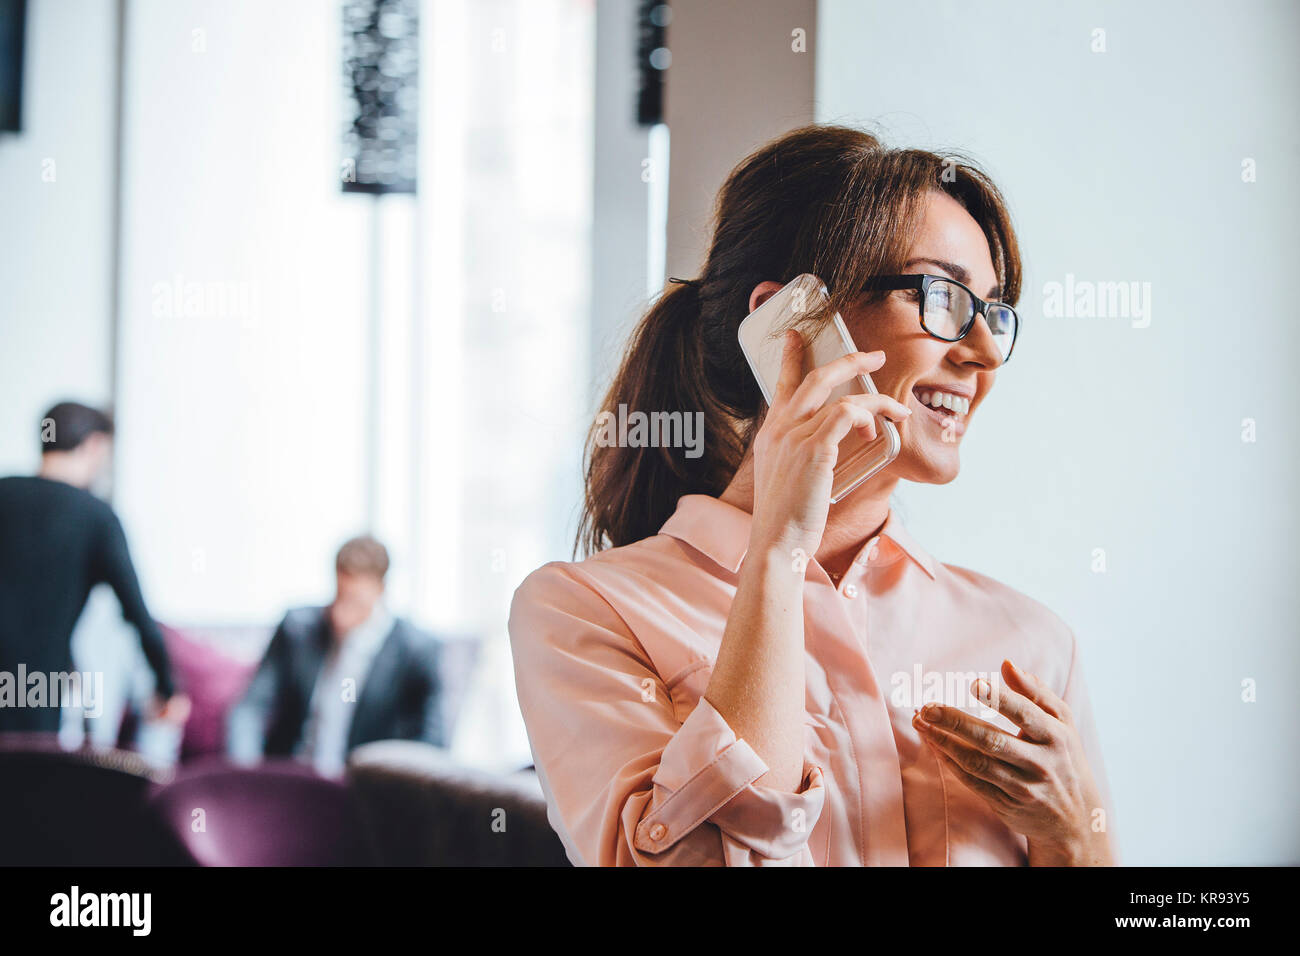 Business woman on the phone - Stock Image